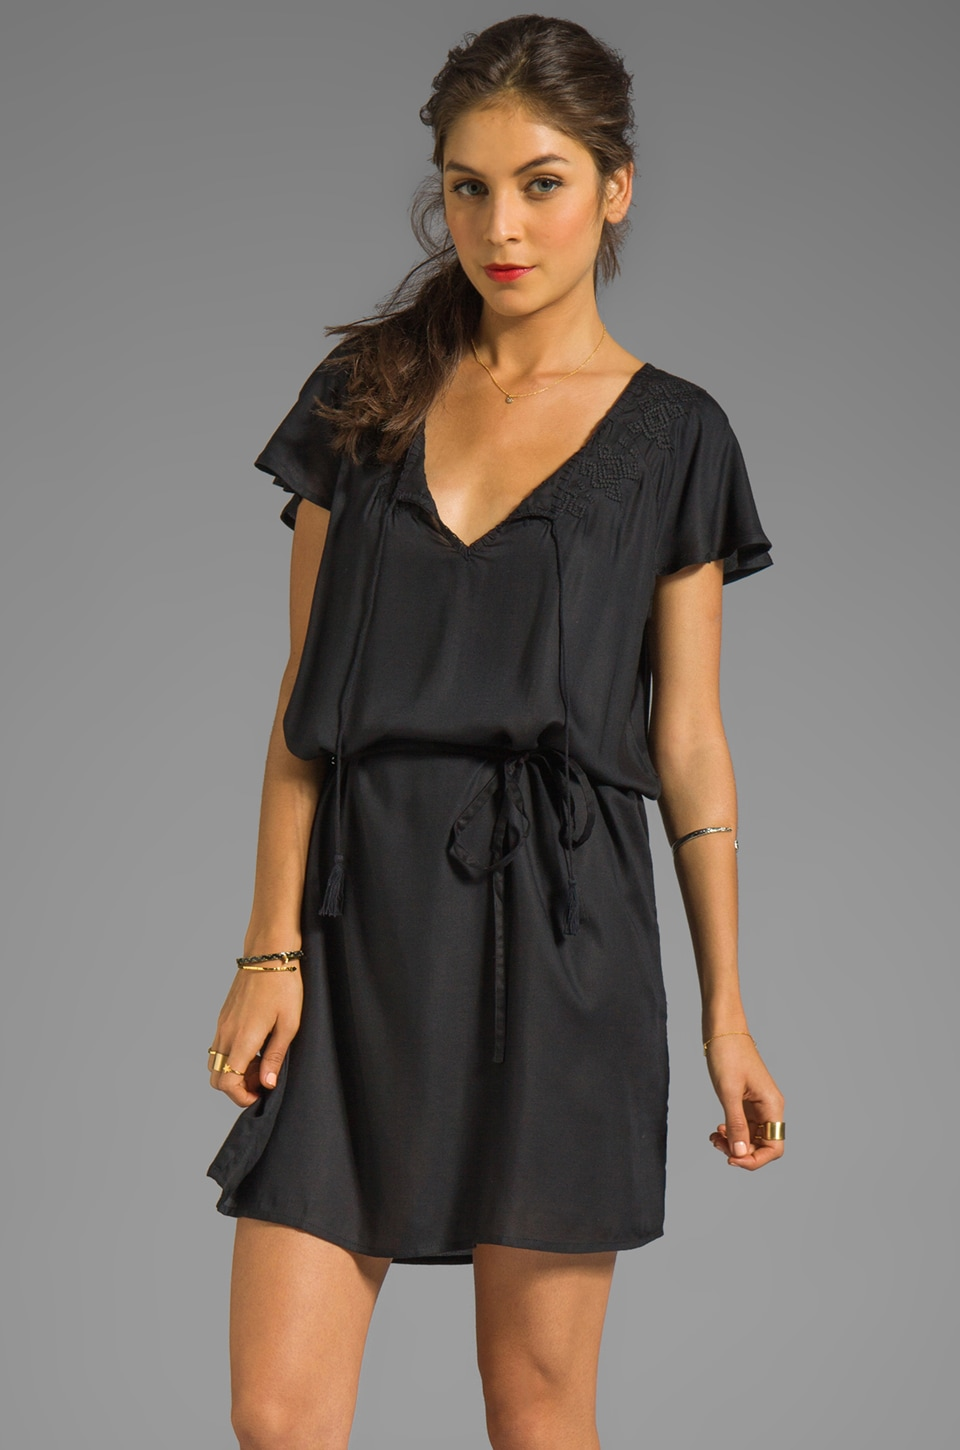 Soft Joie Victoria Embroidery Dress in Caviar